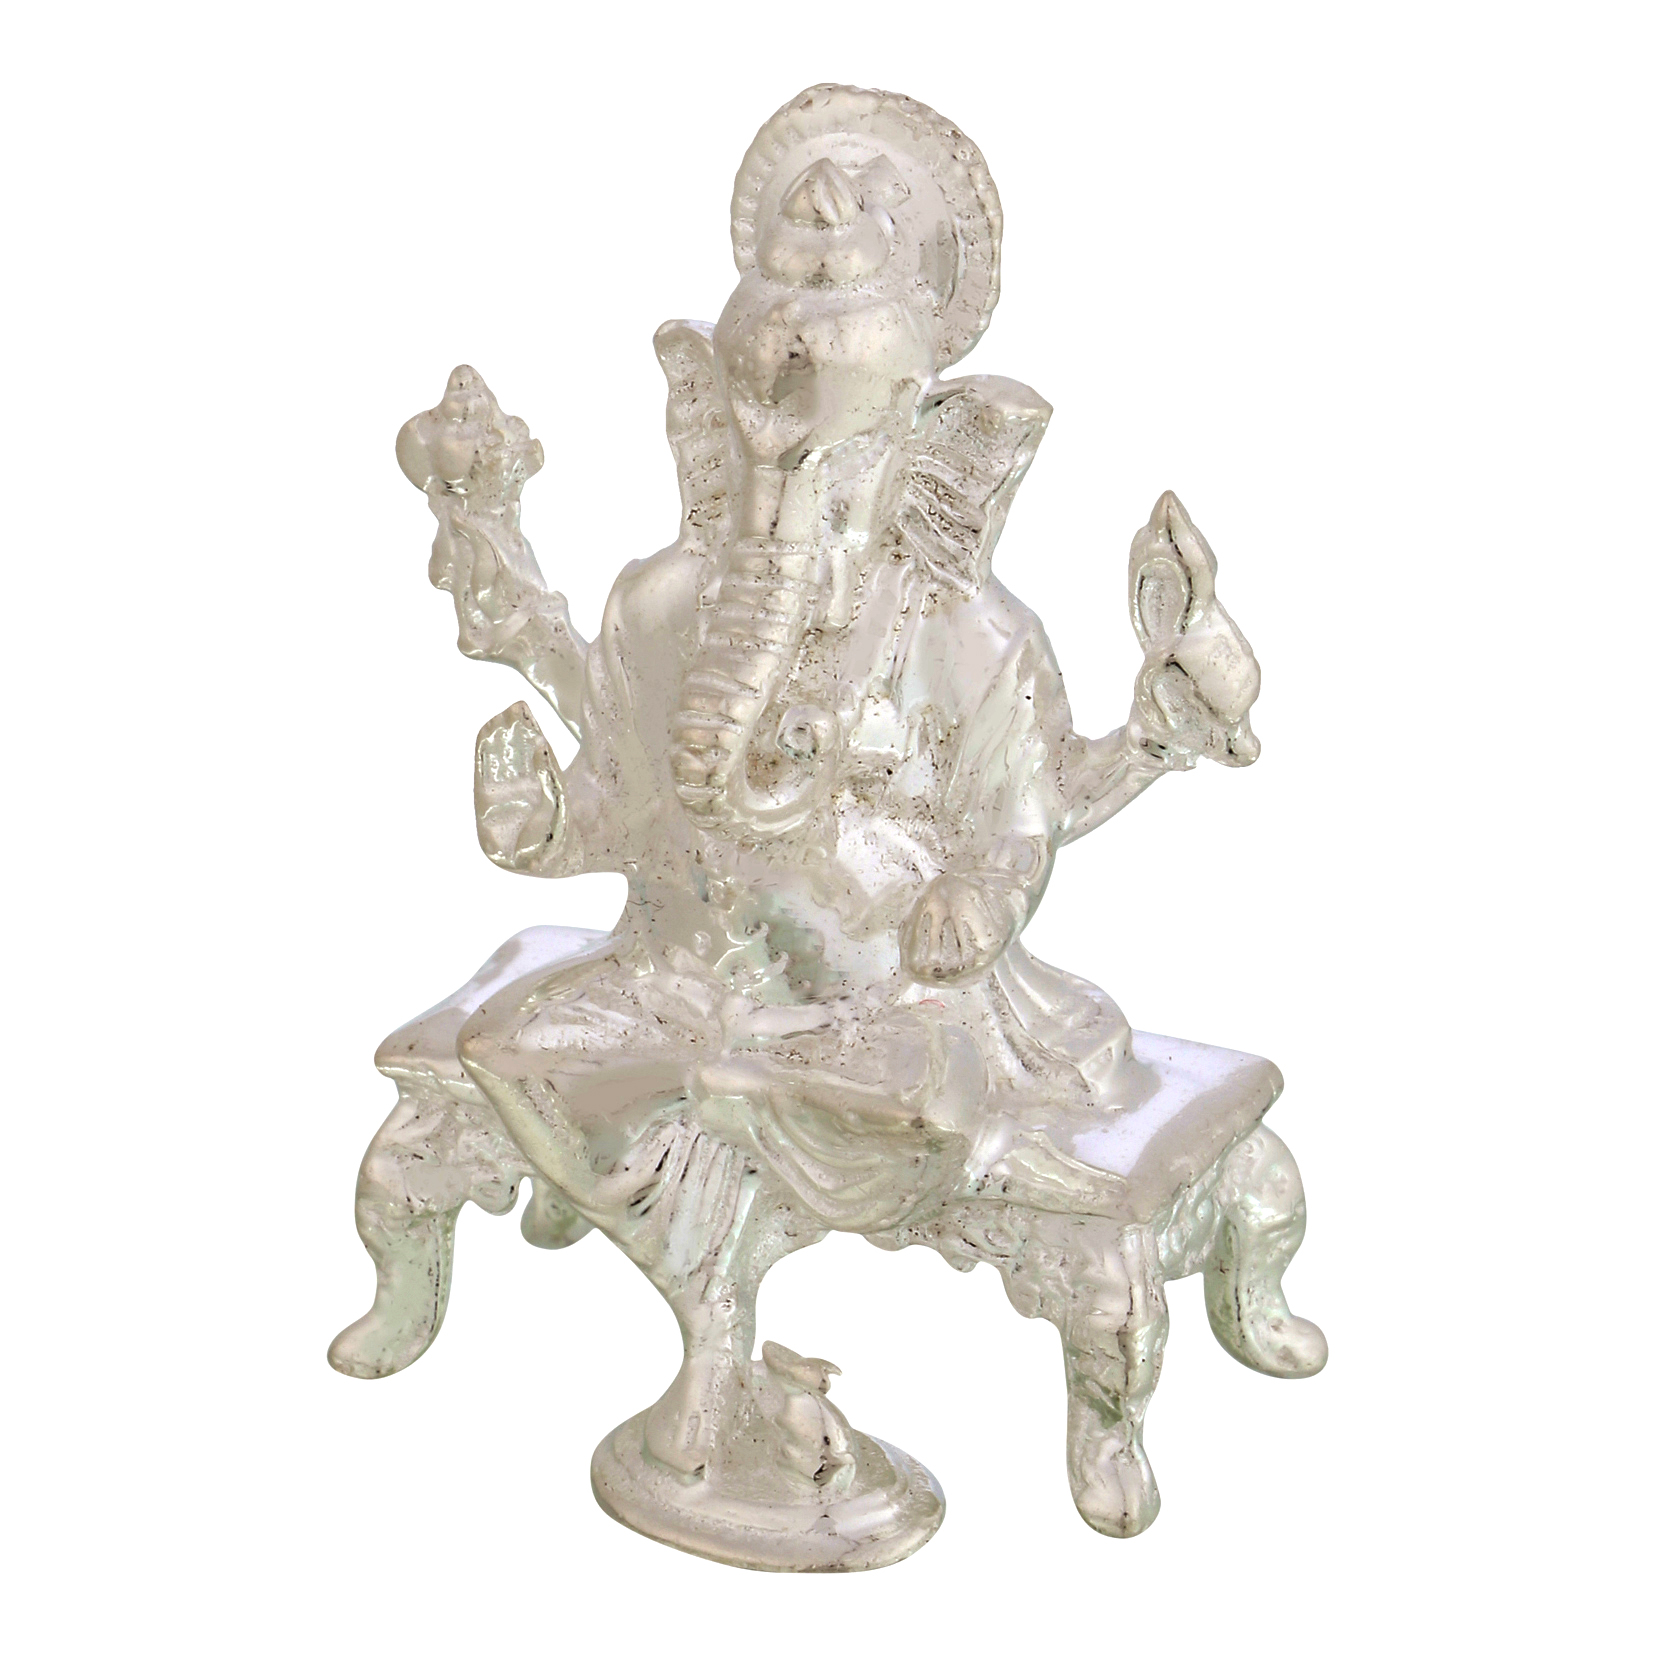 Ganesh ji in Silver by Osasbazaar Right